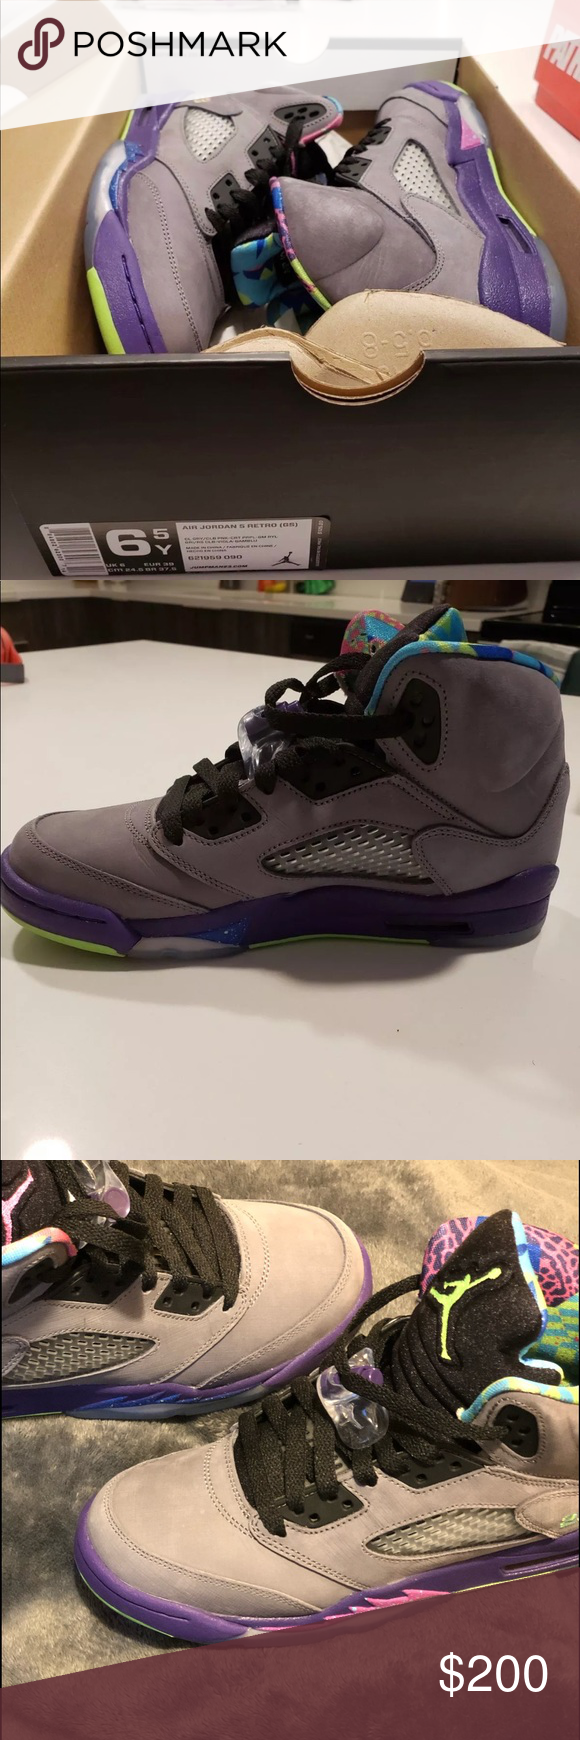 online store 82332 4a055 Jordan 5 Belair 6.5y or women's 8-8.5.New Perfect condition ...